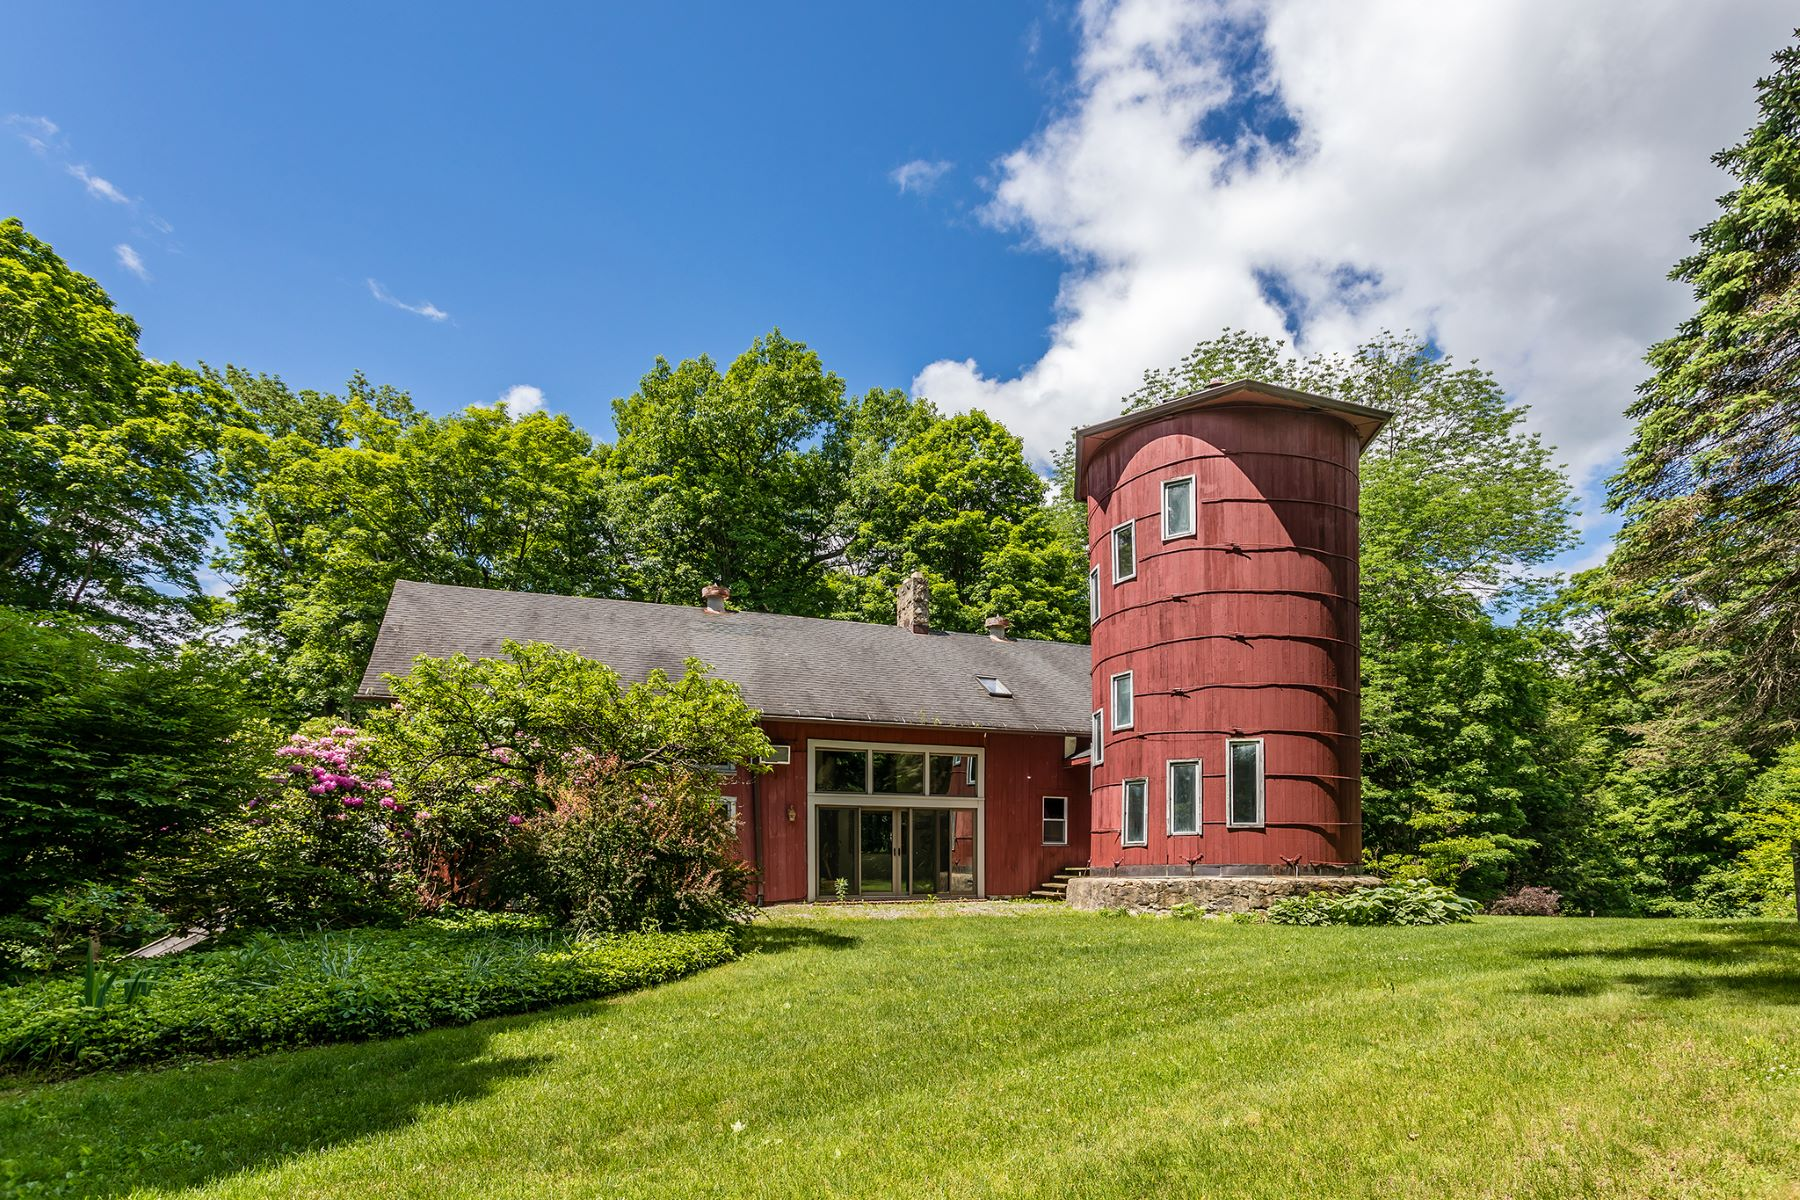 Single Family Homes for Sale at Barn Living and Cape Living, Best of both Worlds 391-395 Kent Cornwall Road Kent, Connecticut 06757 United States